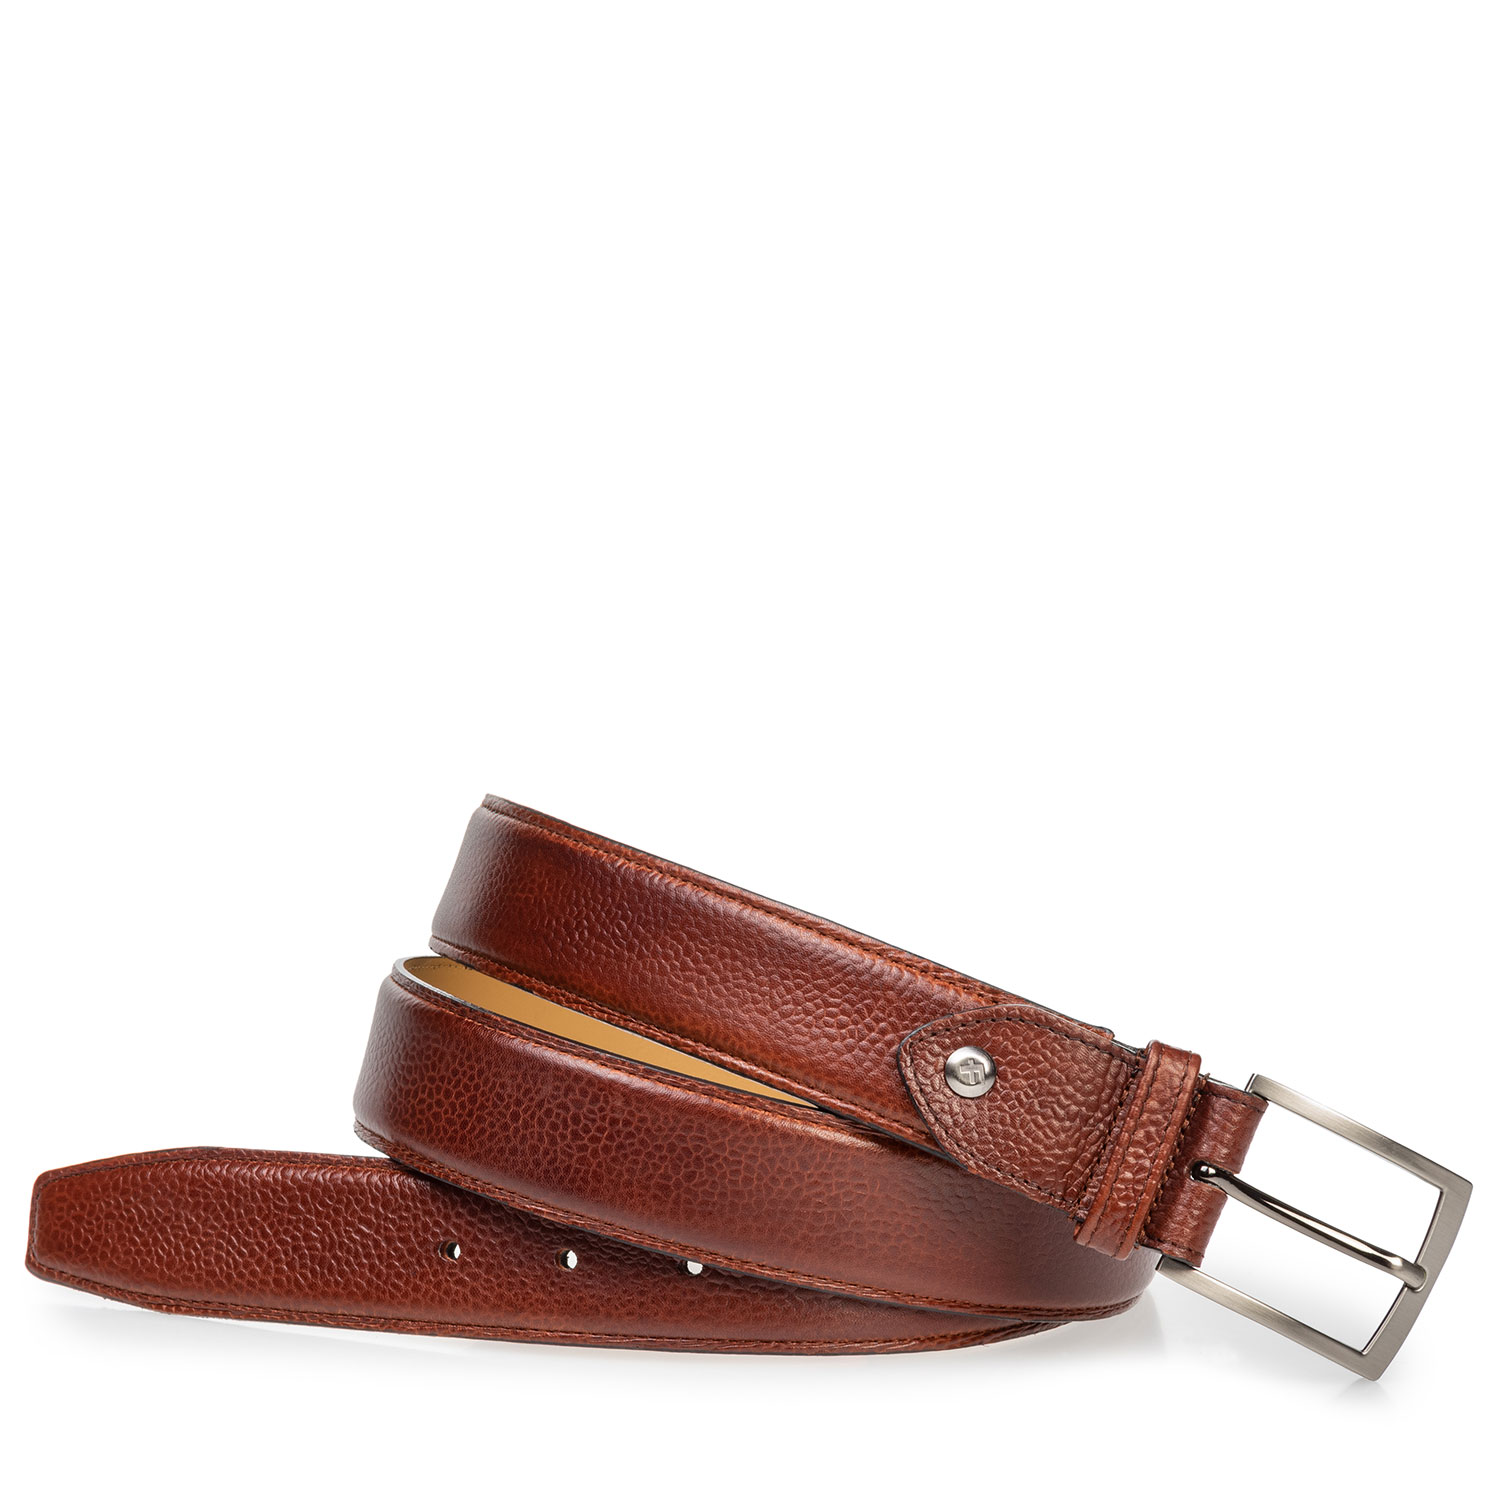 75533/11 - Leather belt cognac with structured pattern